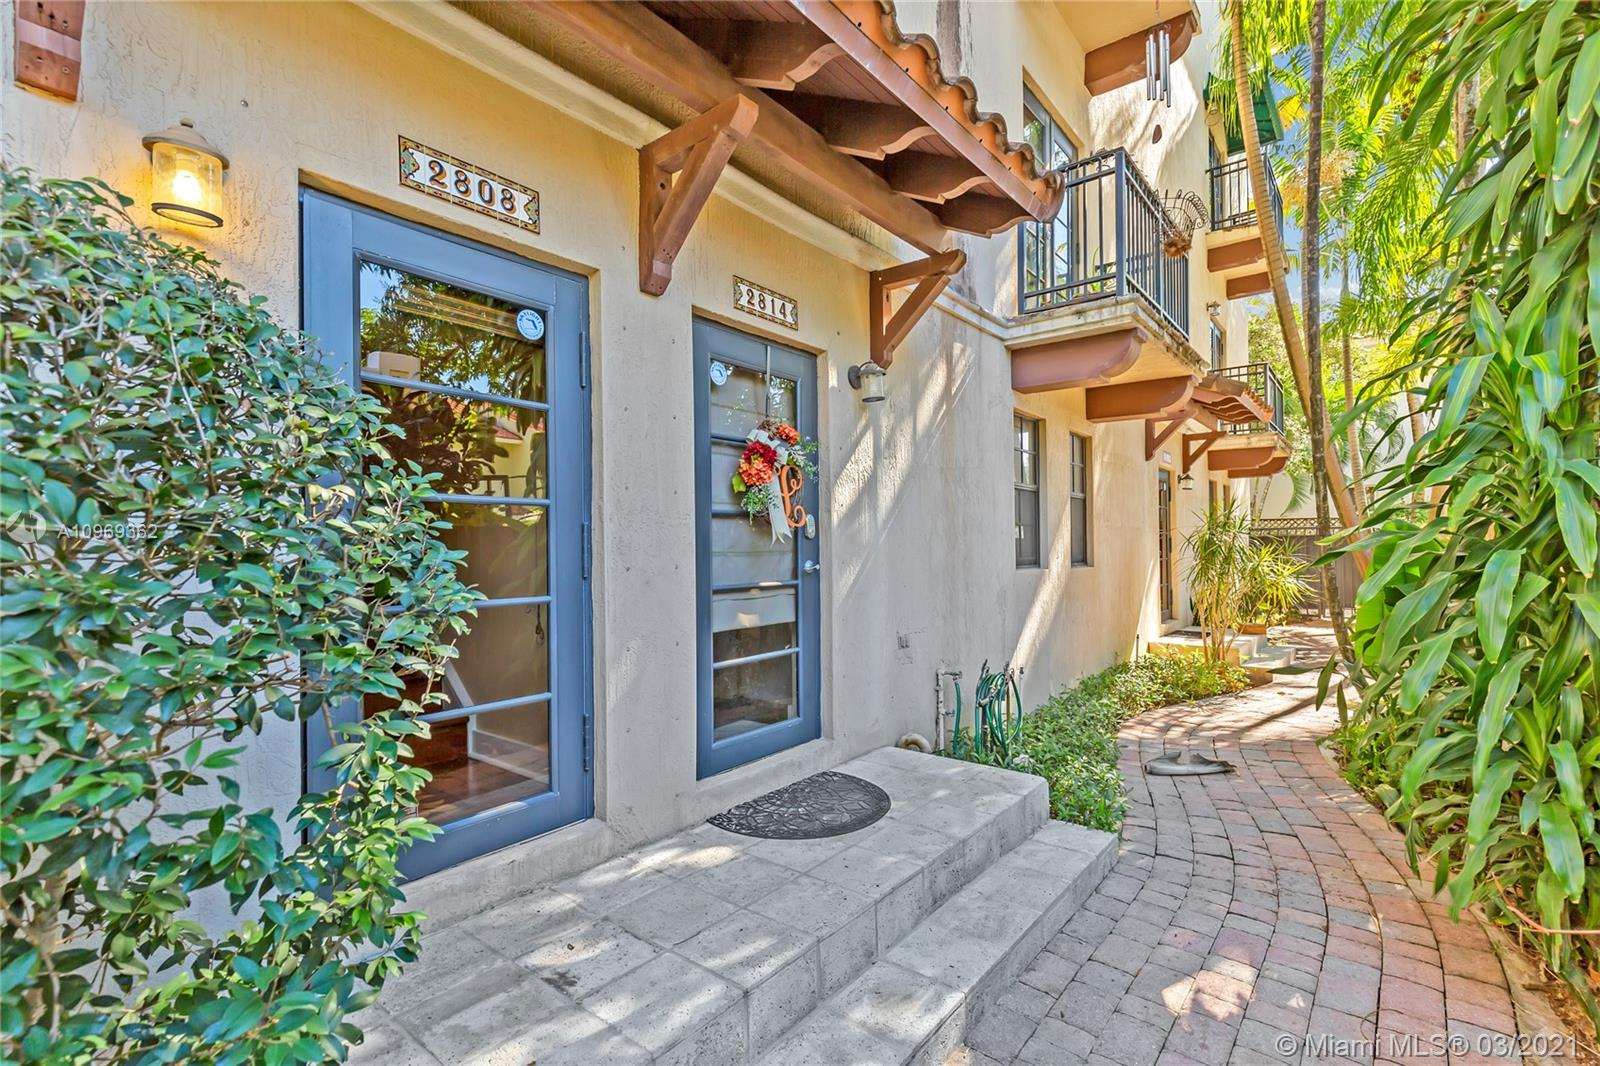 Gorgeous Tri-level townhome in a gated complex just minutes away from Berries, CocoWalk, Bayfront Parks and Marina. Amenities include a community outdoor area with BBQ and a dipping pool. Open kitchen with breakfast bar and beautiful granite countertops are a great contrast to the wood cabinetry and stainless steel appliances. French doors lead you to the balcony with a view of the beautiful greenery this complex has to offer. Newly redone wood floors. Very bright and airy with all the modern features you expect. Comfortable 2 car garage that is completely built out and offers a bonus room/office. Great for people that work from home. This is a Beautiful Miami Home!